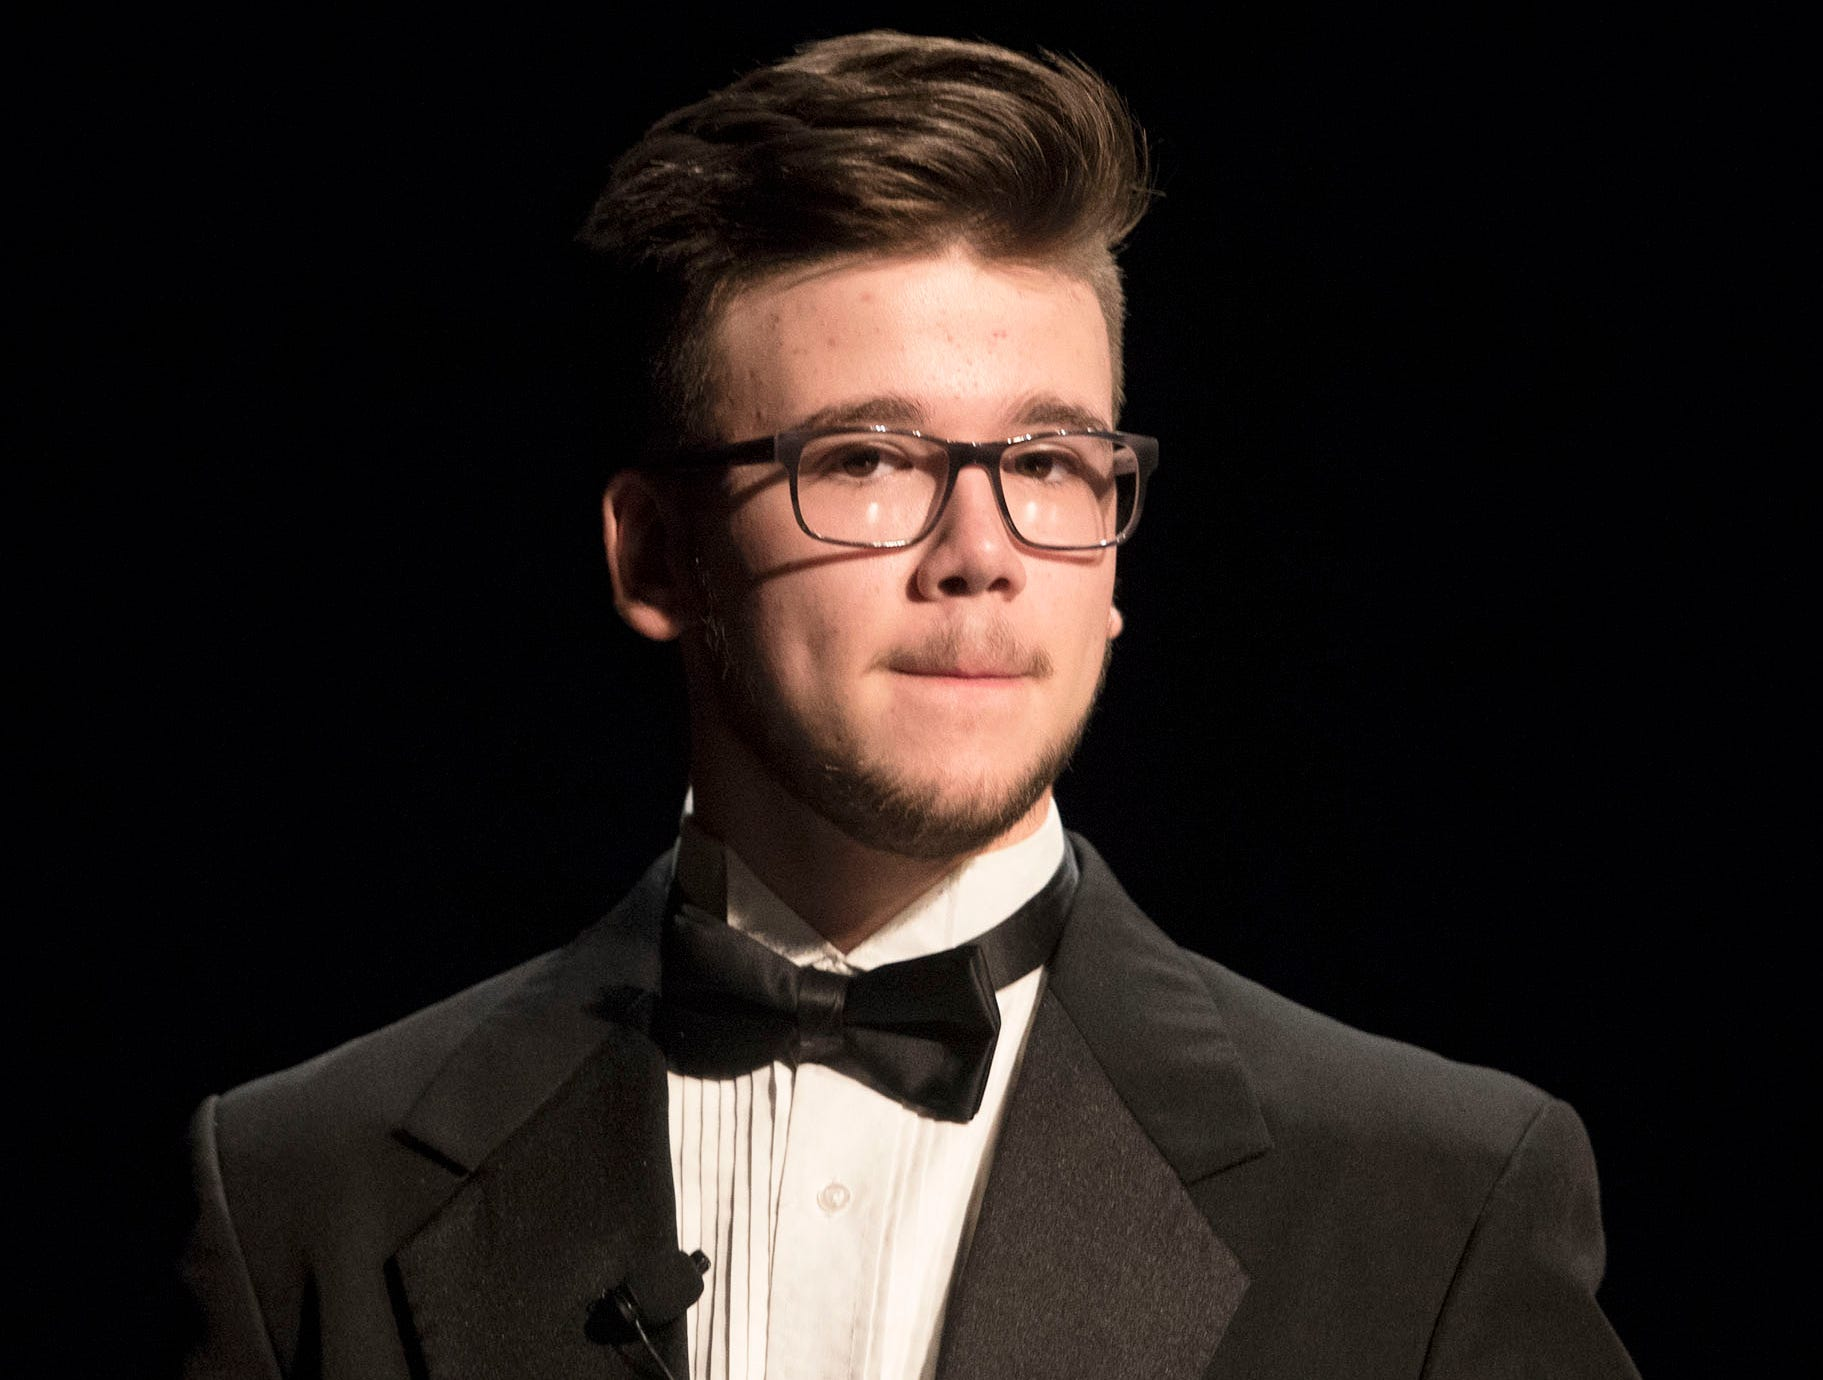 Benjamin Martin performs during dress rehearsal. The CASHS Drama Club (in cooperation with Music Theatre International) will be performing Songs for a New World By Jason Robert Brown on Friday, November 9, 2018 at 7:30 PM and Saturday, November 10, 2018 at 2:30 and 7:30 PM. 